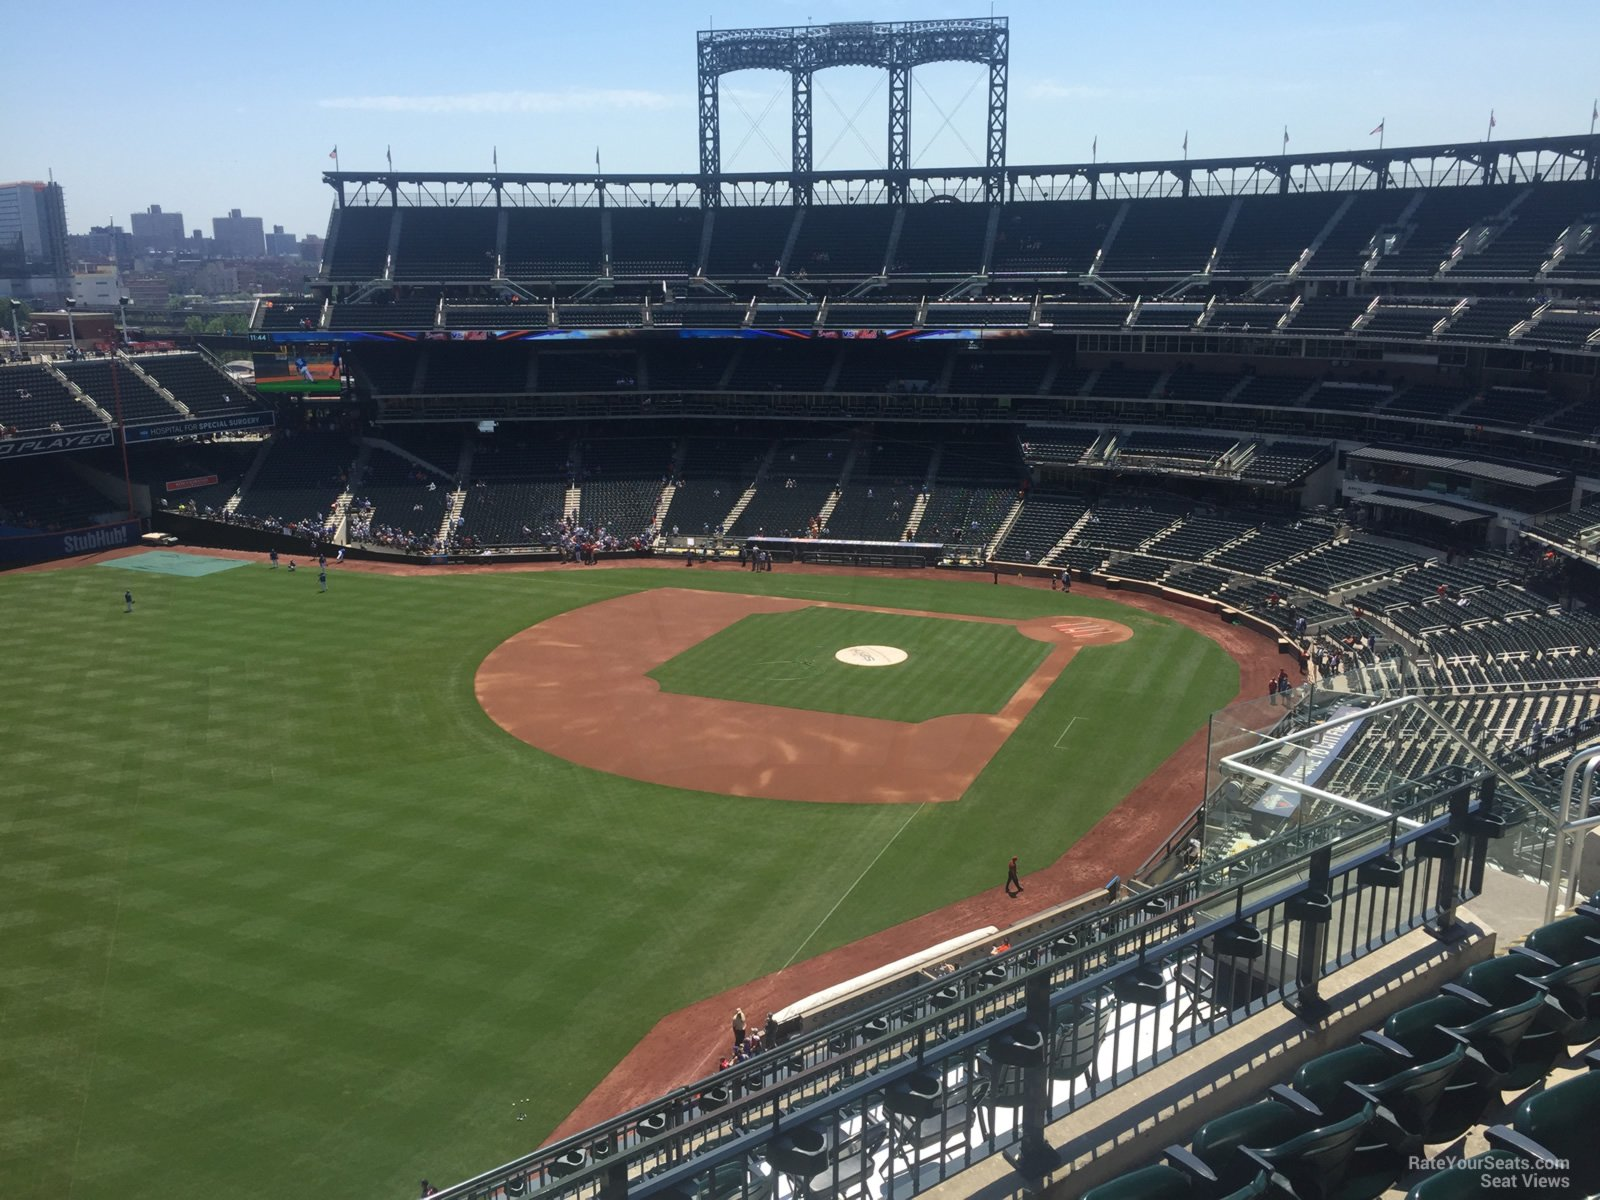 Section 528 at Citi Field - RateYourSeats.com